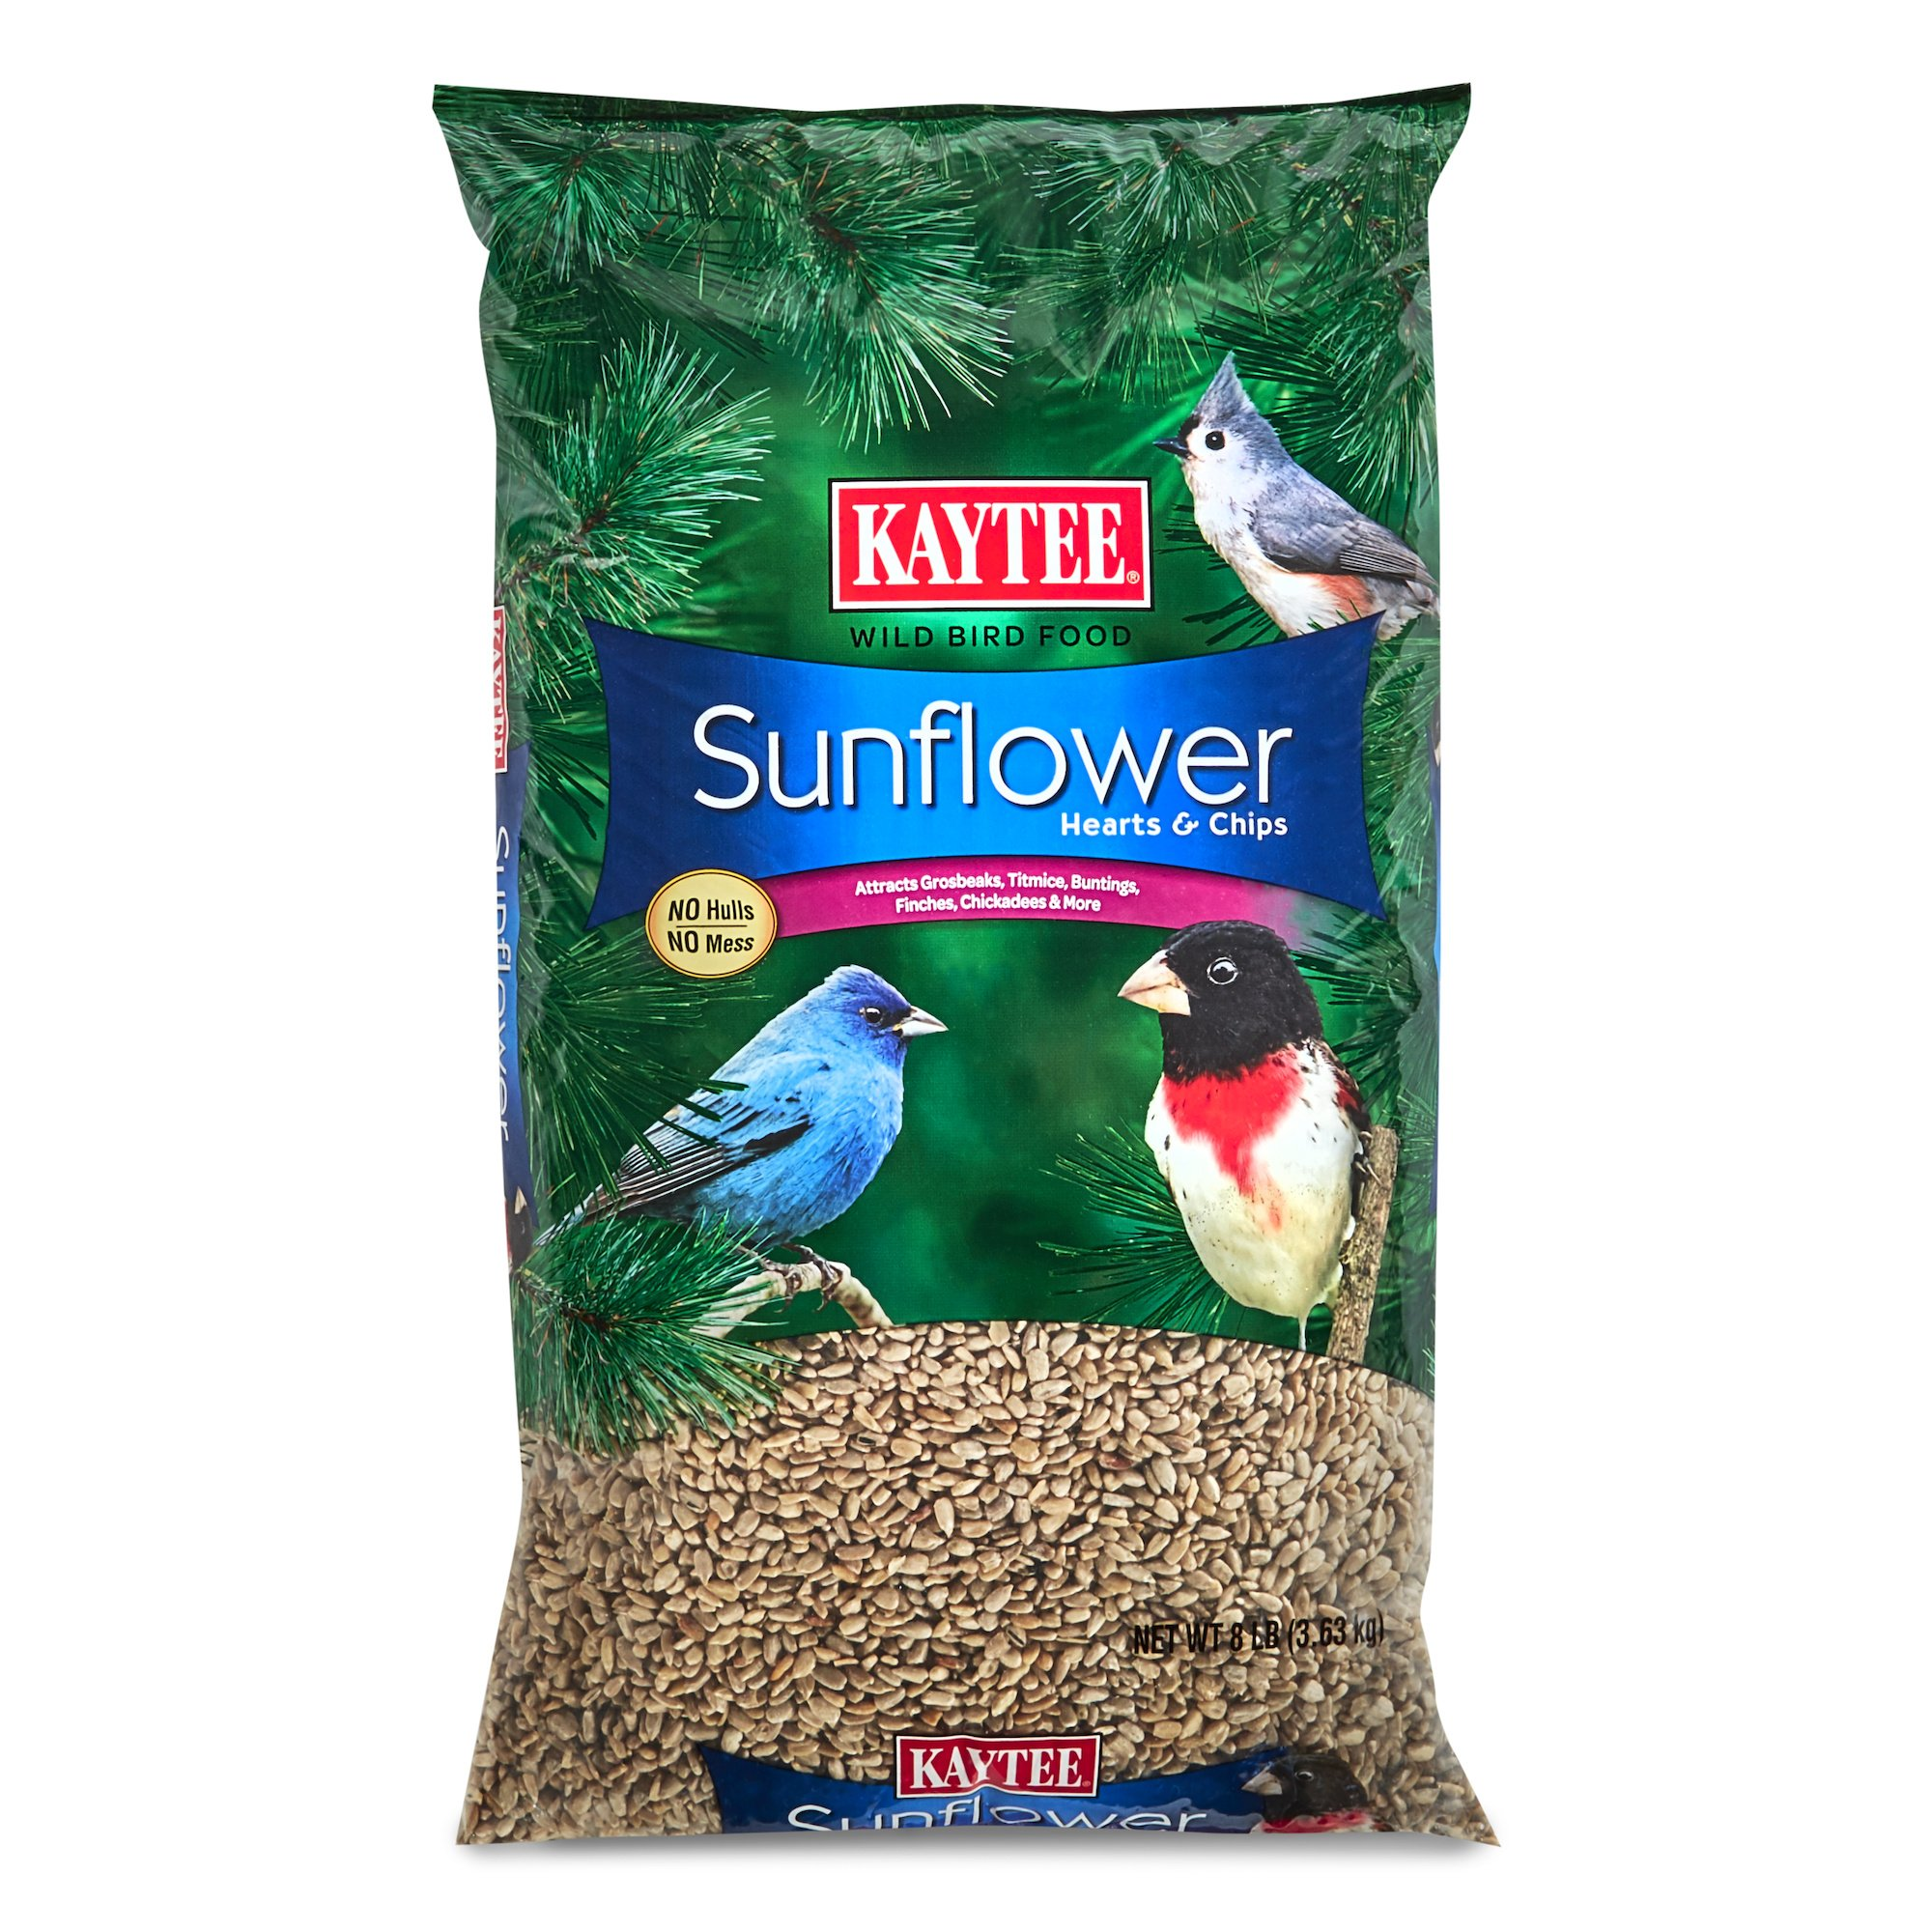 Kaytee Sunflower Hearts and Chips Bird Seed, 8-Pound by Kaytee